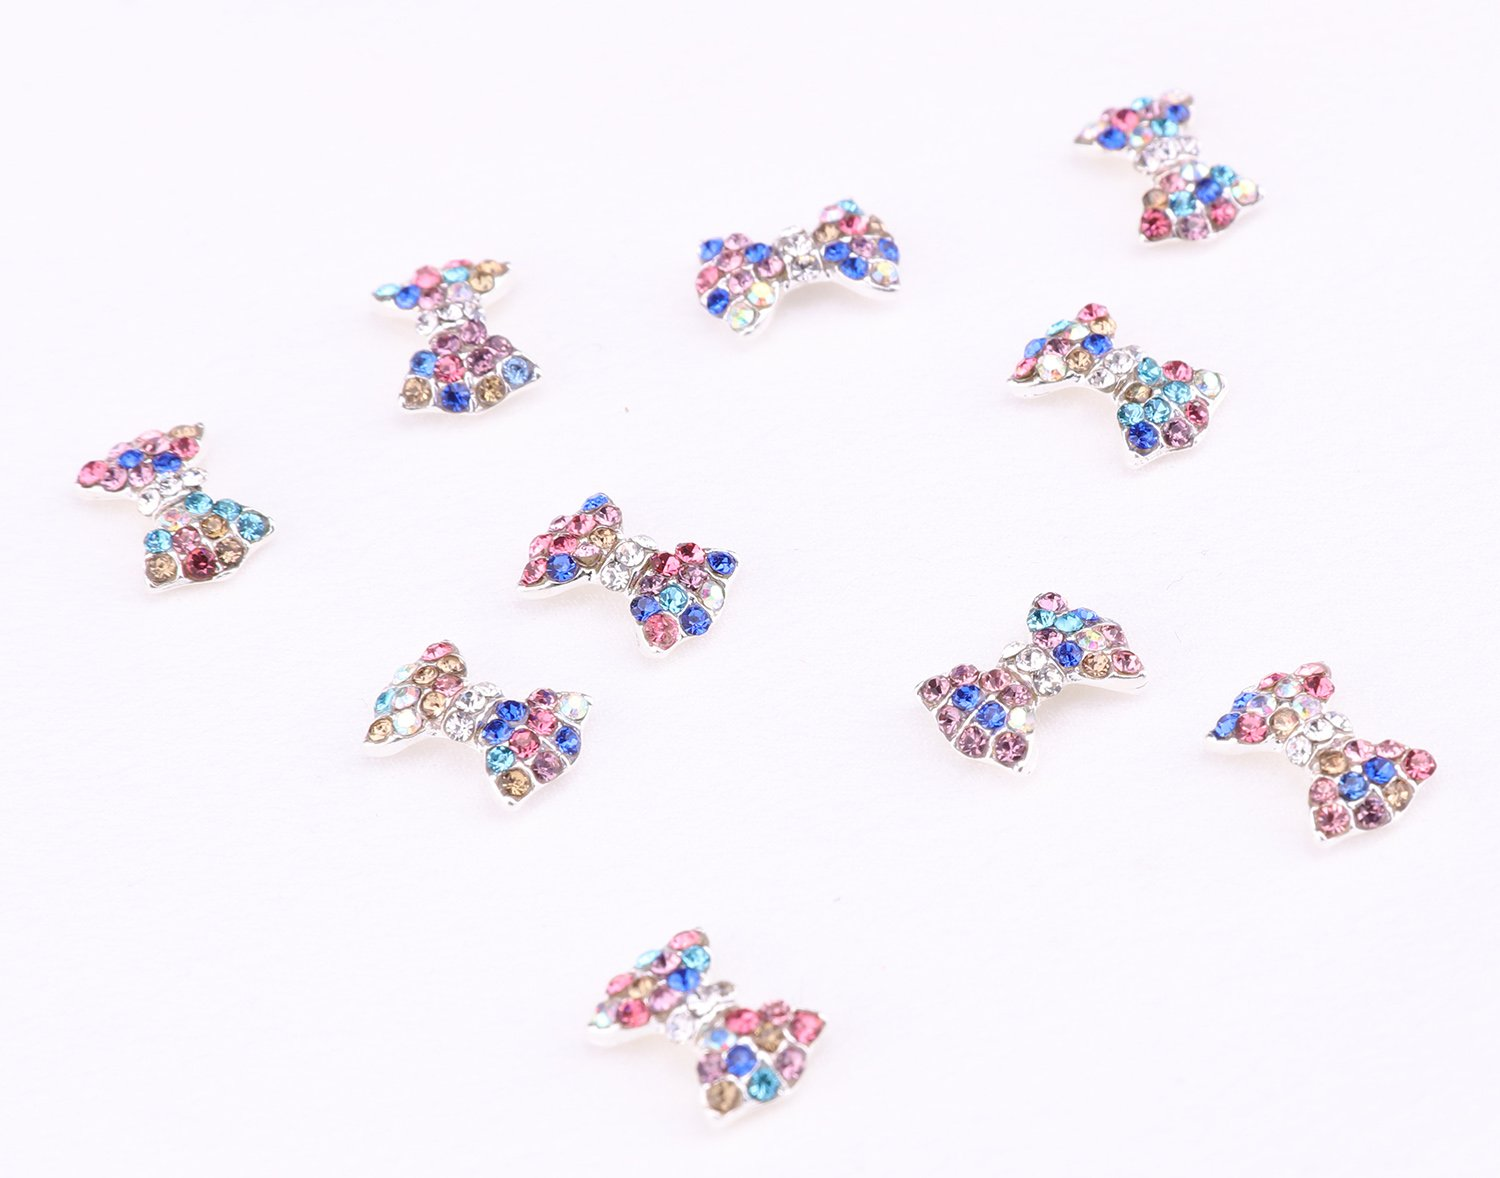 3D Nail Art Charms,Fashionclubs Glitter Bow Rhinestone Nail Art Sticker Decoration,Nail Tip Pendant Decal DIY Decoration,30-Pack by Fashionclubs